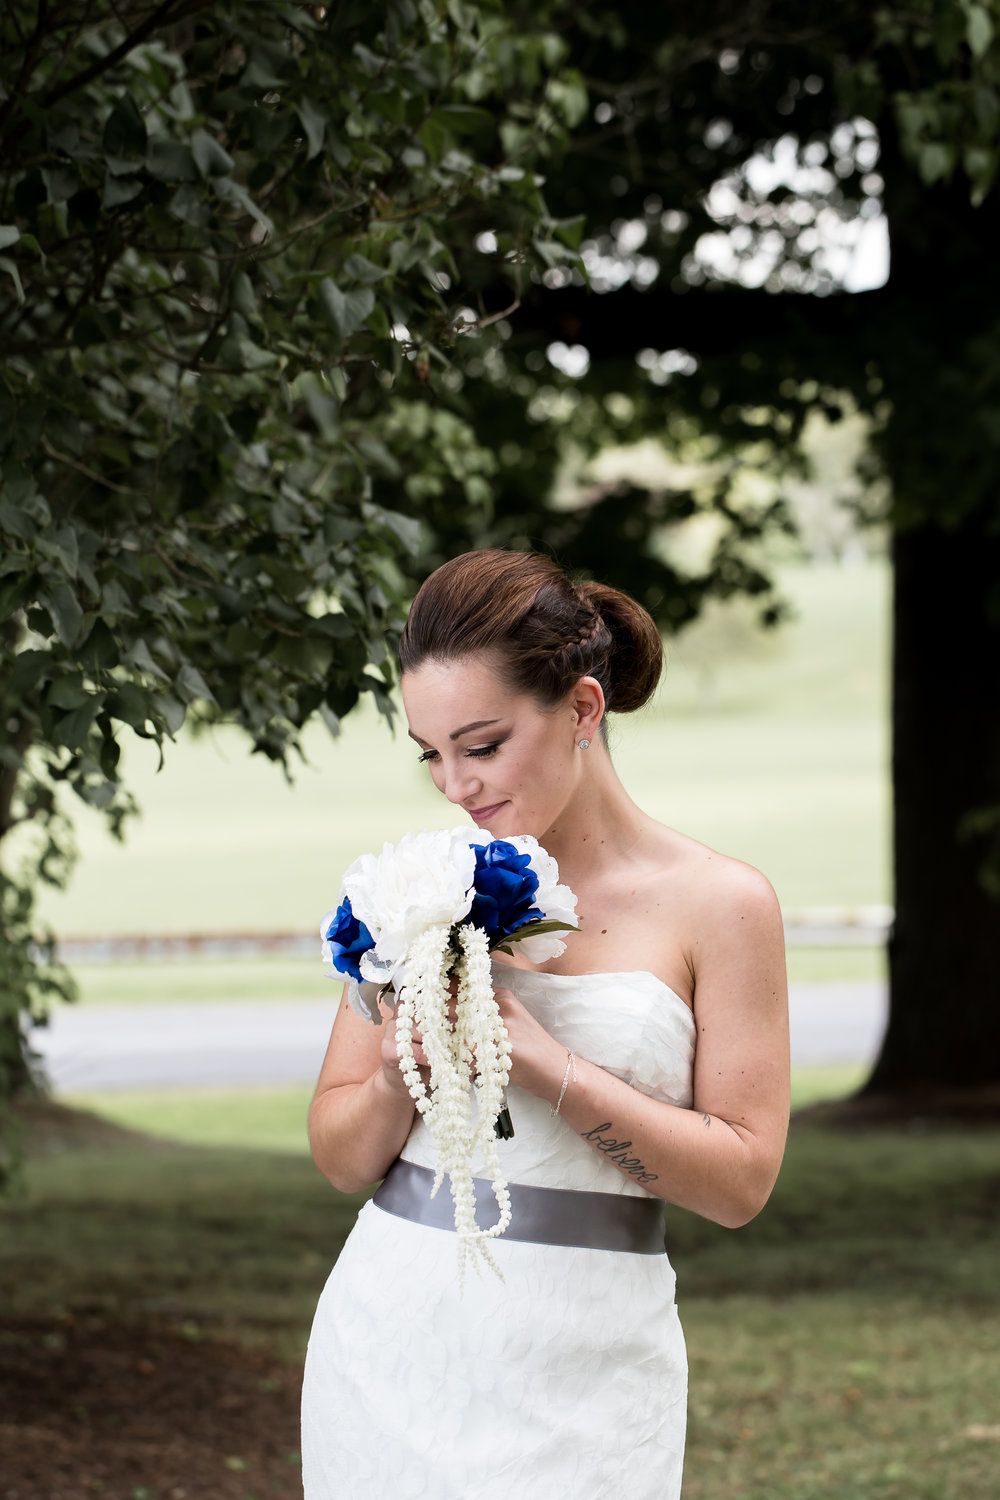 Gandjos_Tinko_BackSeatPhotography_backseatphoto51.JPG